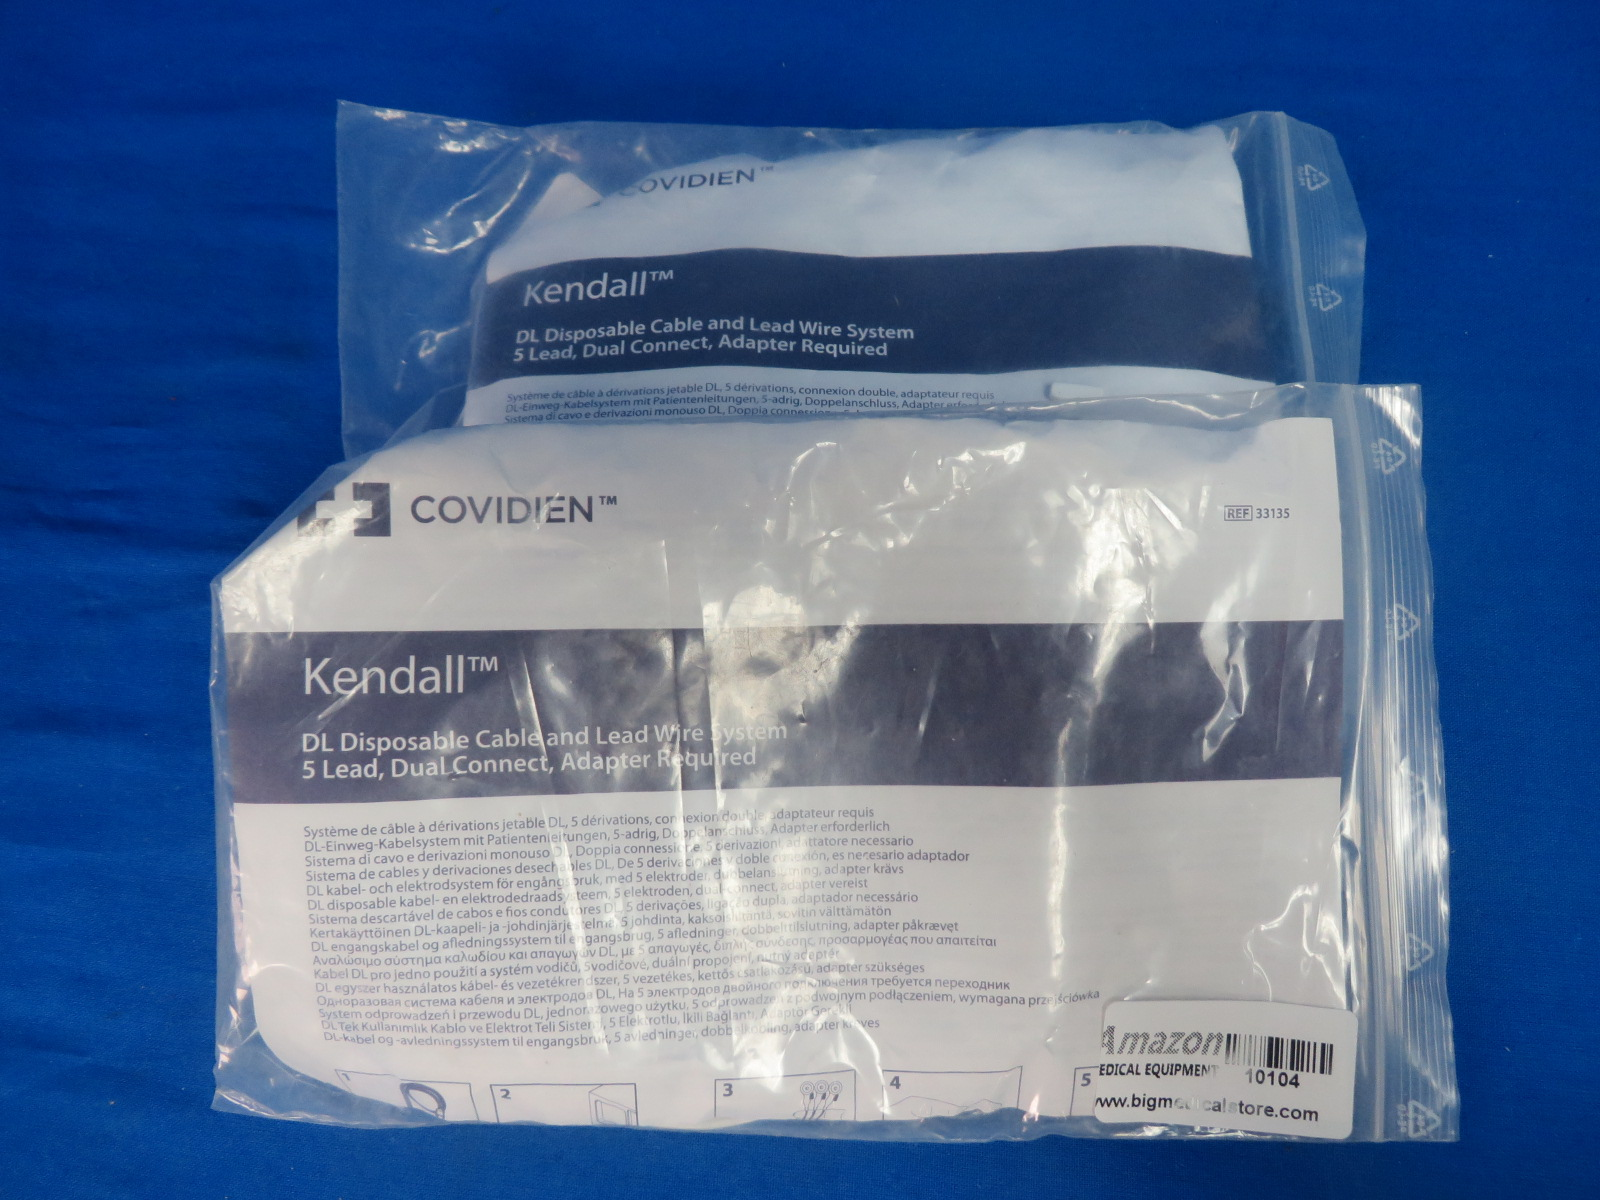 Covidien Kendall DL 33135 2 qty Disposable Cable and Lead Wire System 5  Lead Dual Connect, Adaptor Required, 90 Day Warranty